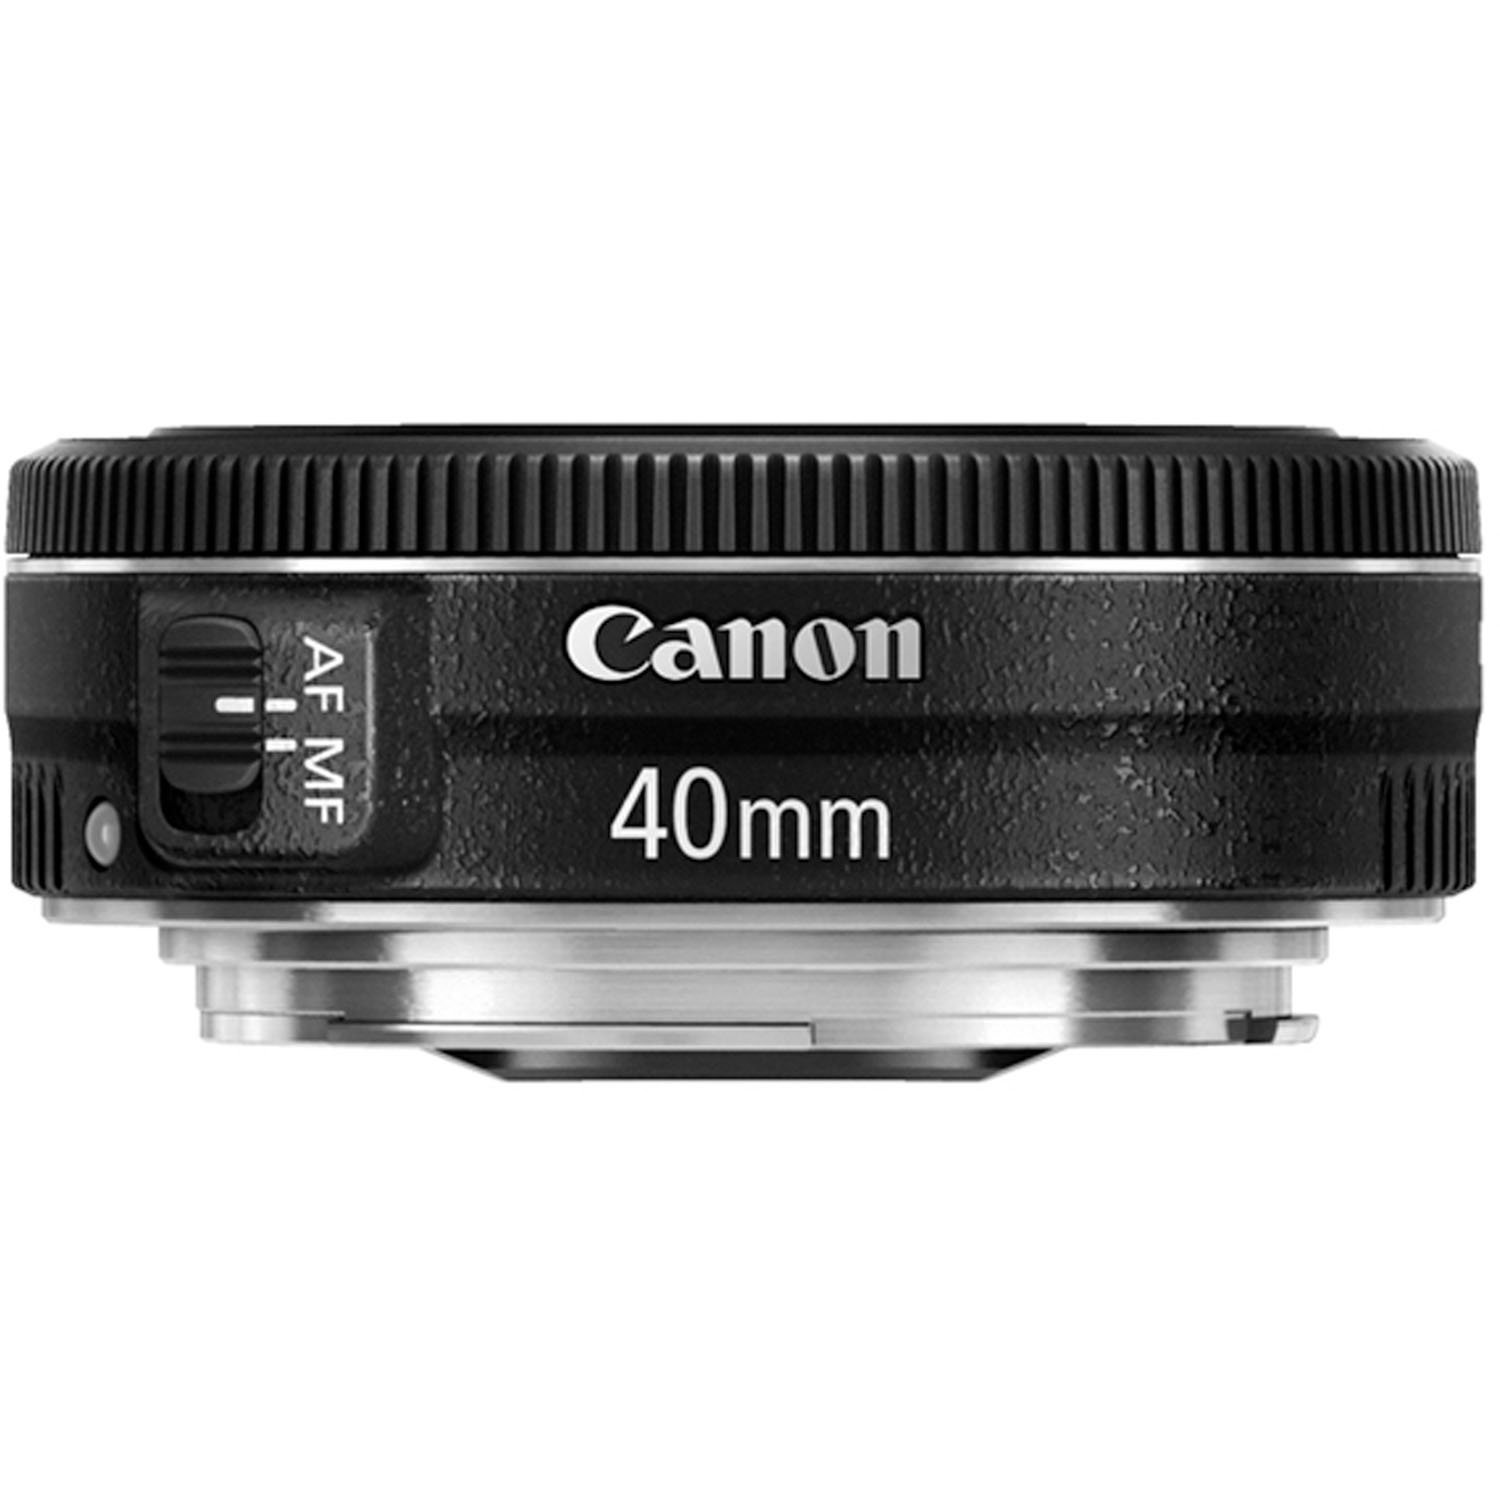 Canon EF 40mm f/2.8 STM Lens - Fixed by Canon (Image #2)